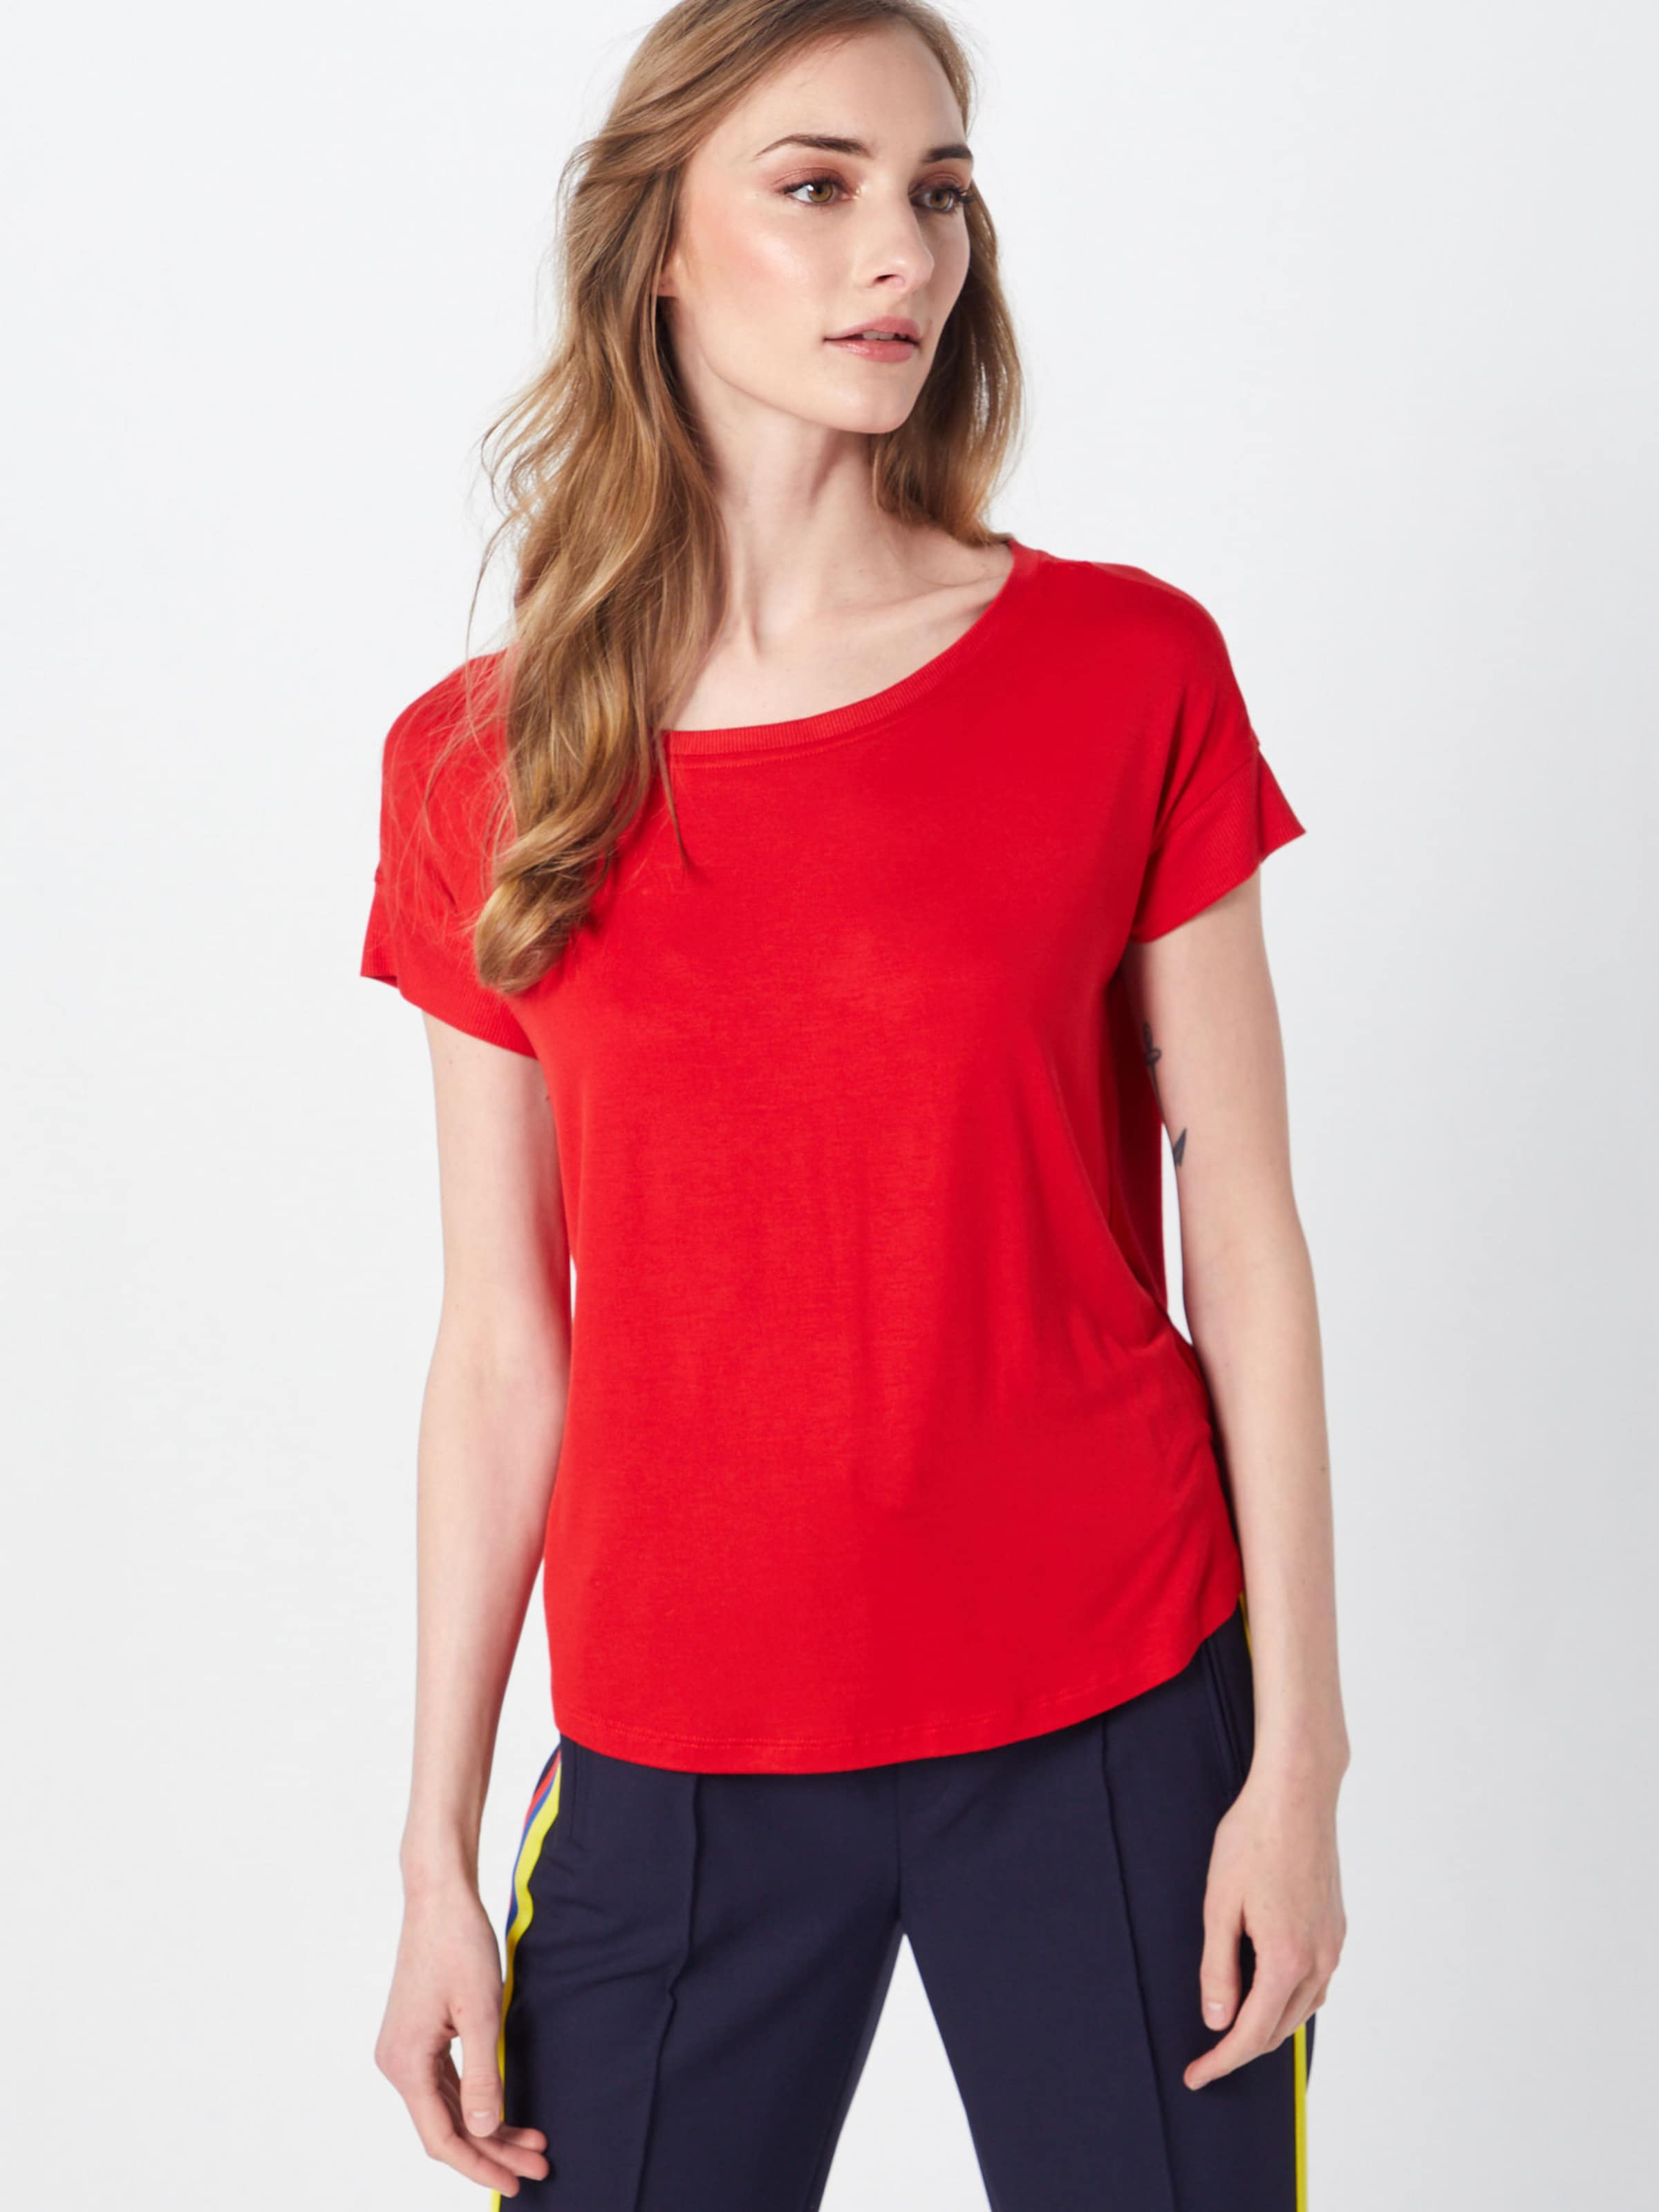 Shirt In Red shirt Kurzarm' Label 't oliver Rot S wXk80PnO